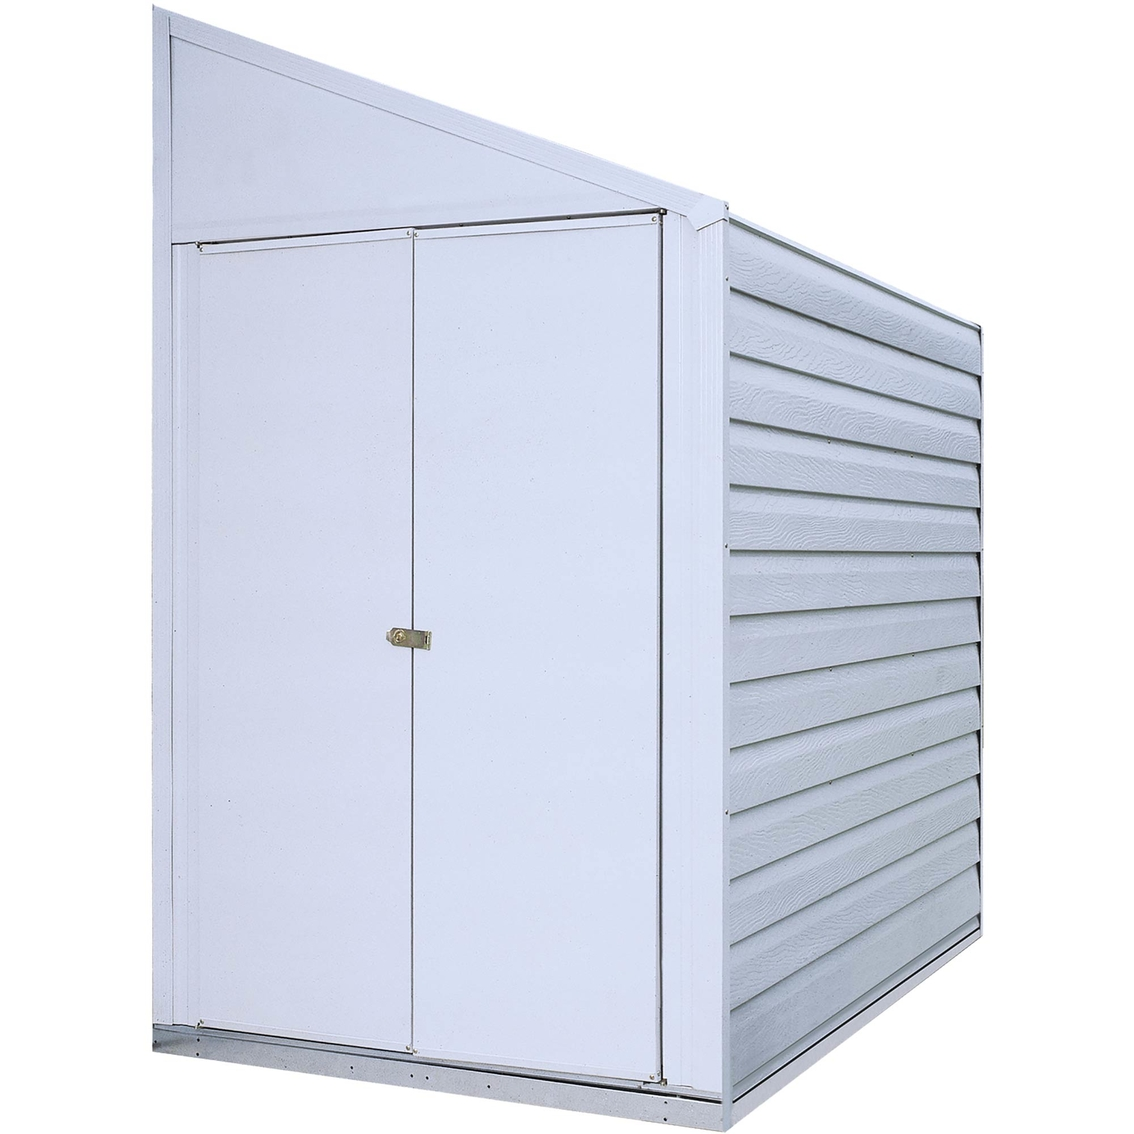 Steel Storage Sheds Arrow Yardsaver 4 X 7 Ft Steel Storage Shed Pent Roof Storage